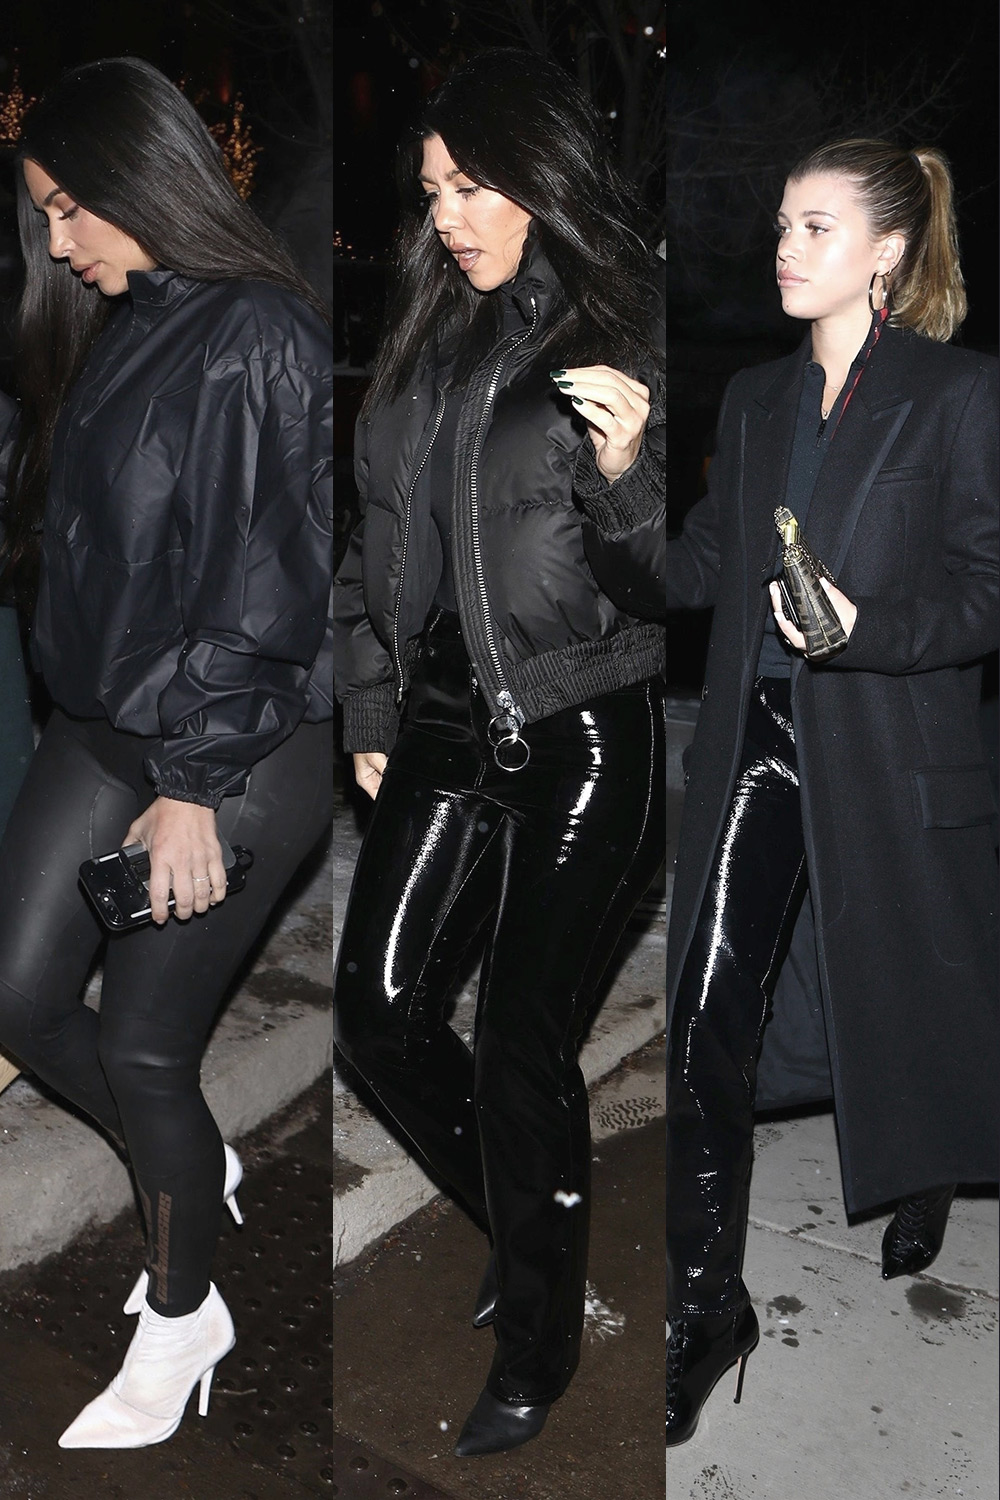 Kim & Kourtney Kardashian and Sofia Richie at Matsuhisa restaurant